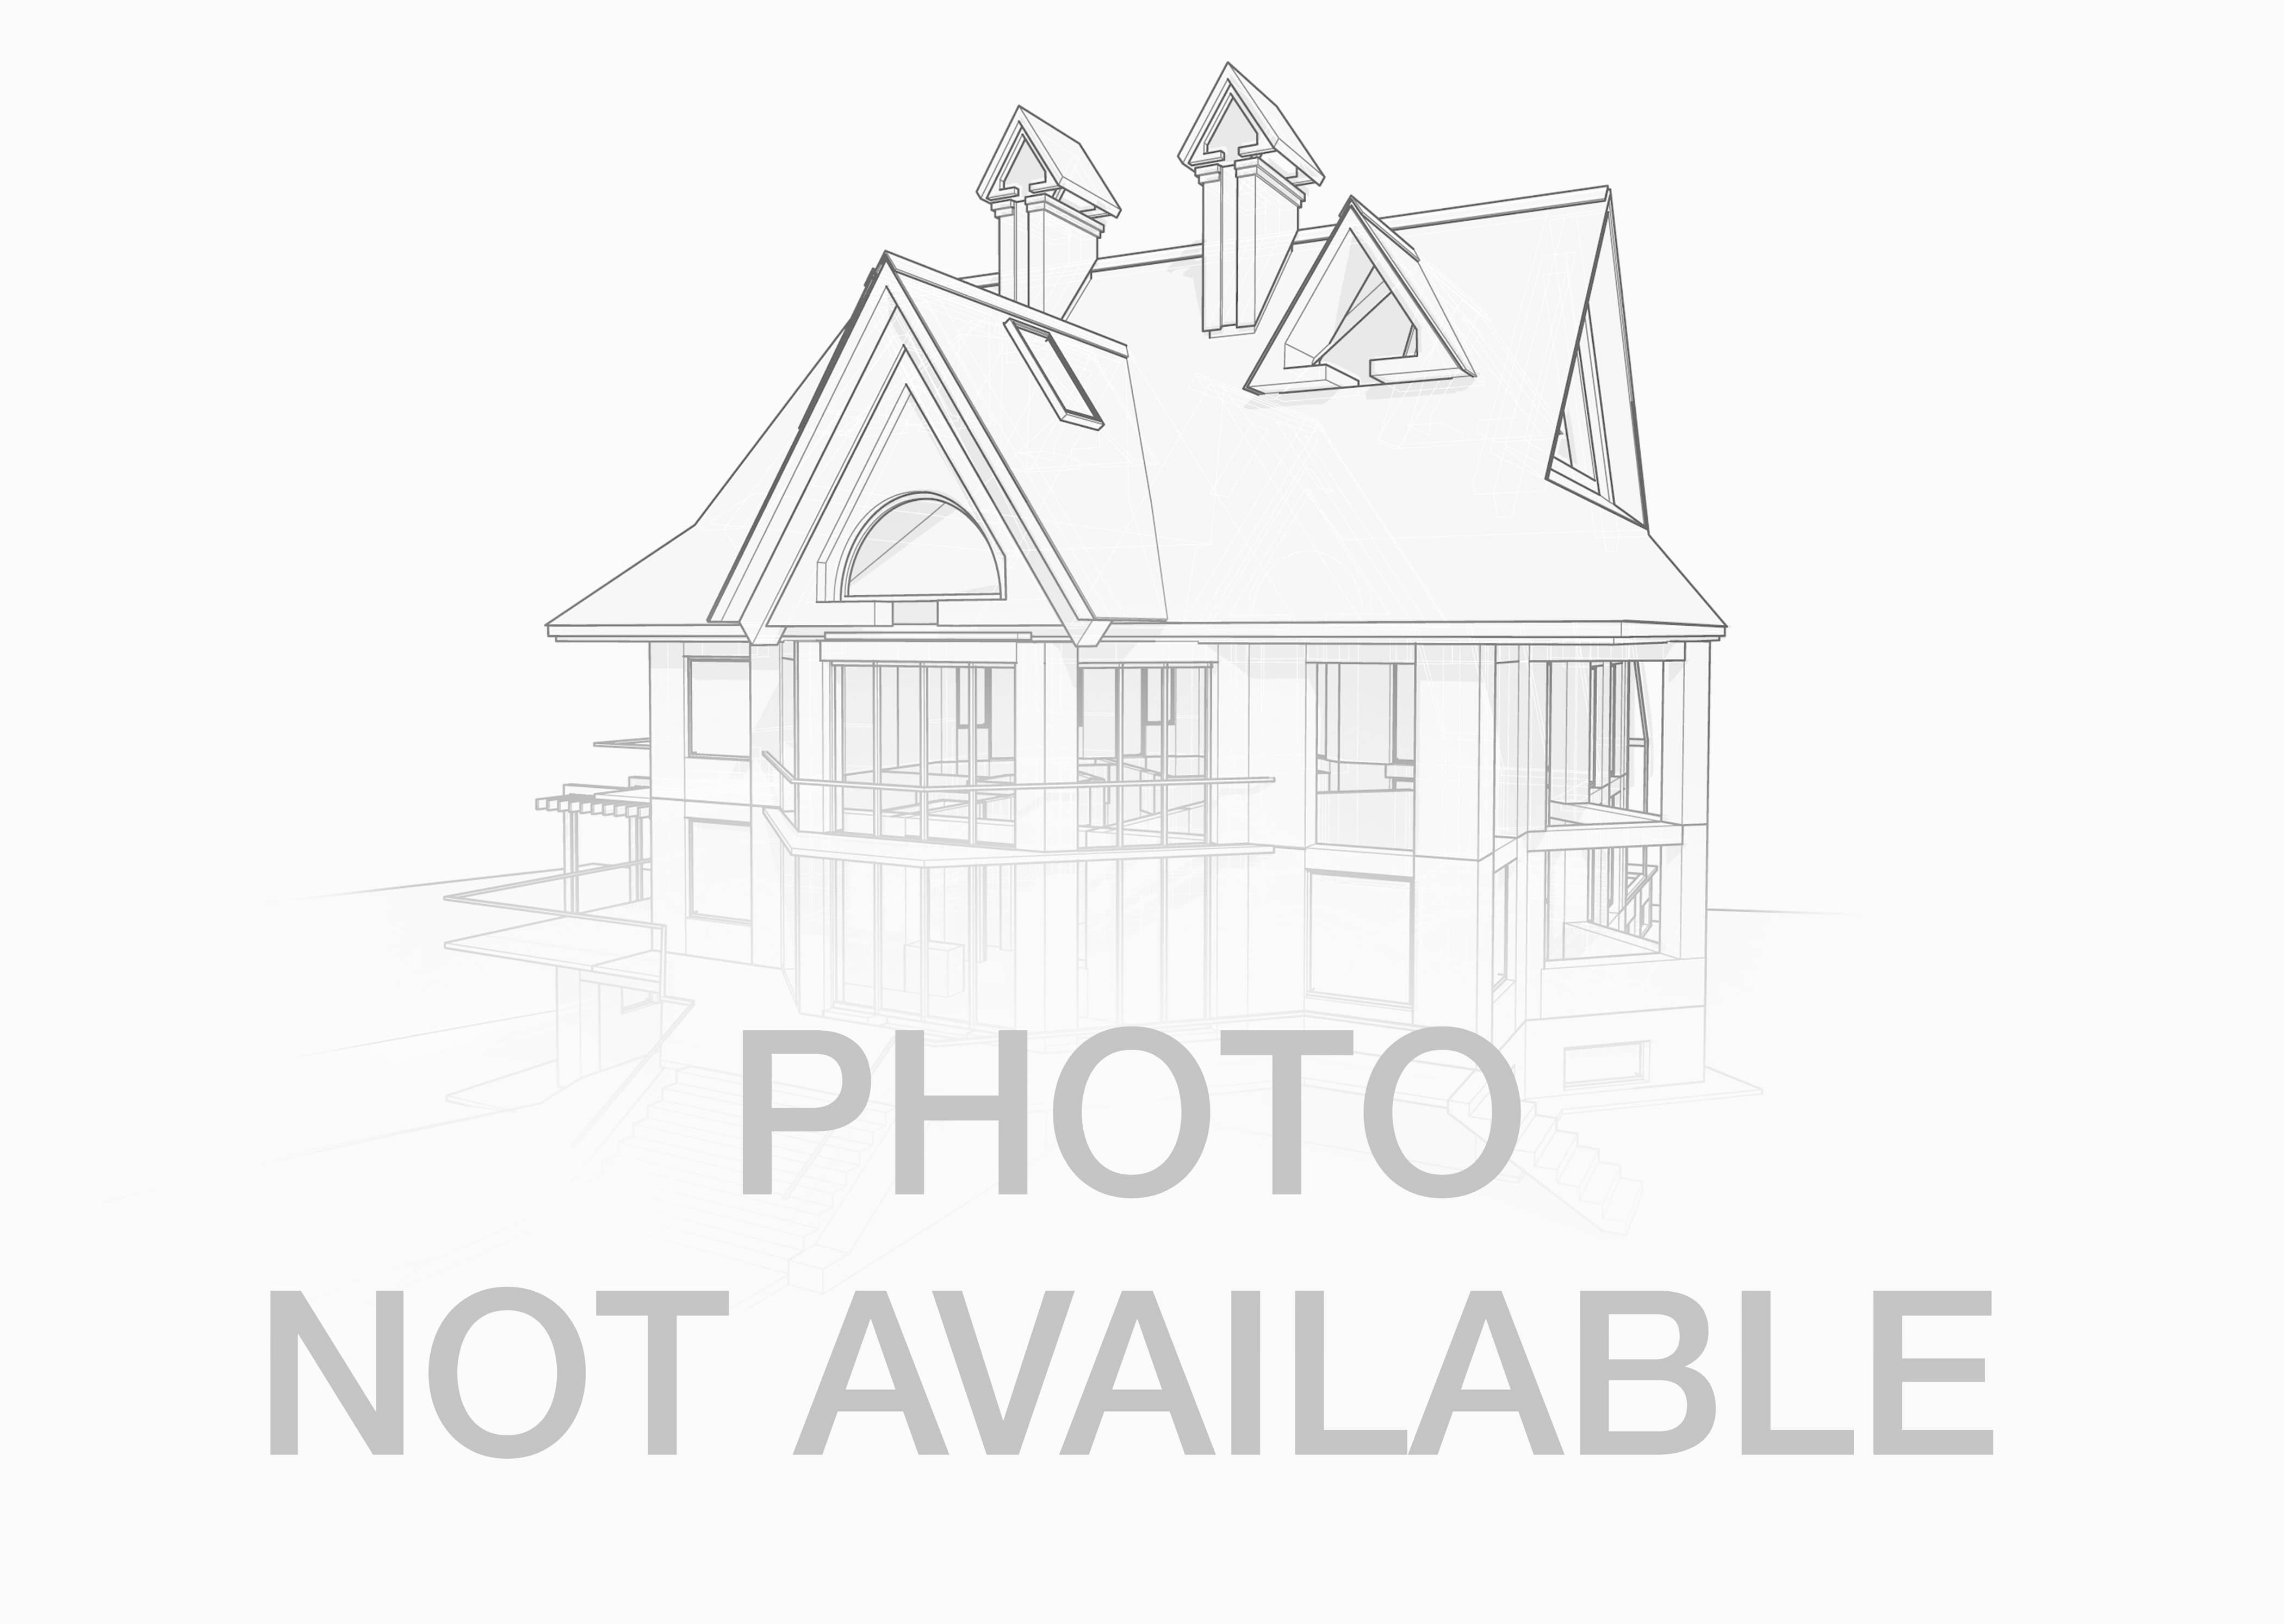 RE/MAX Legacy Realty Has North Dakota Homes Listed Online